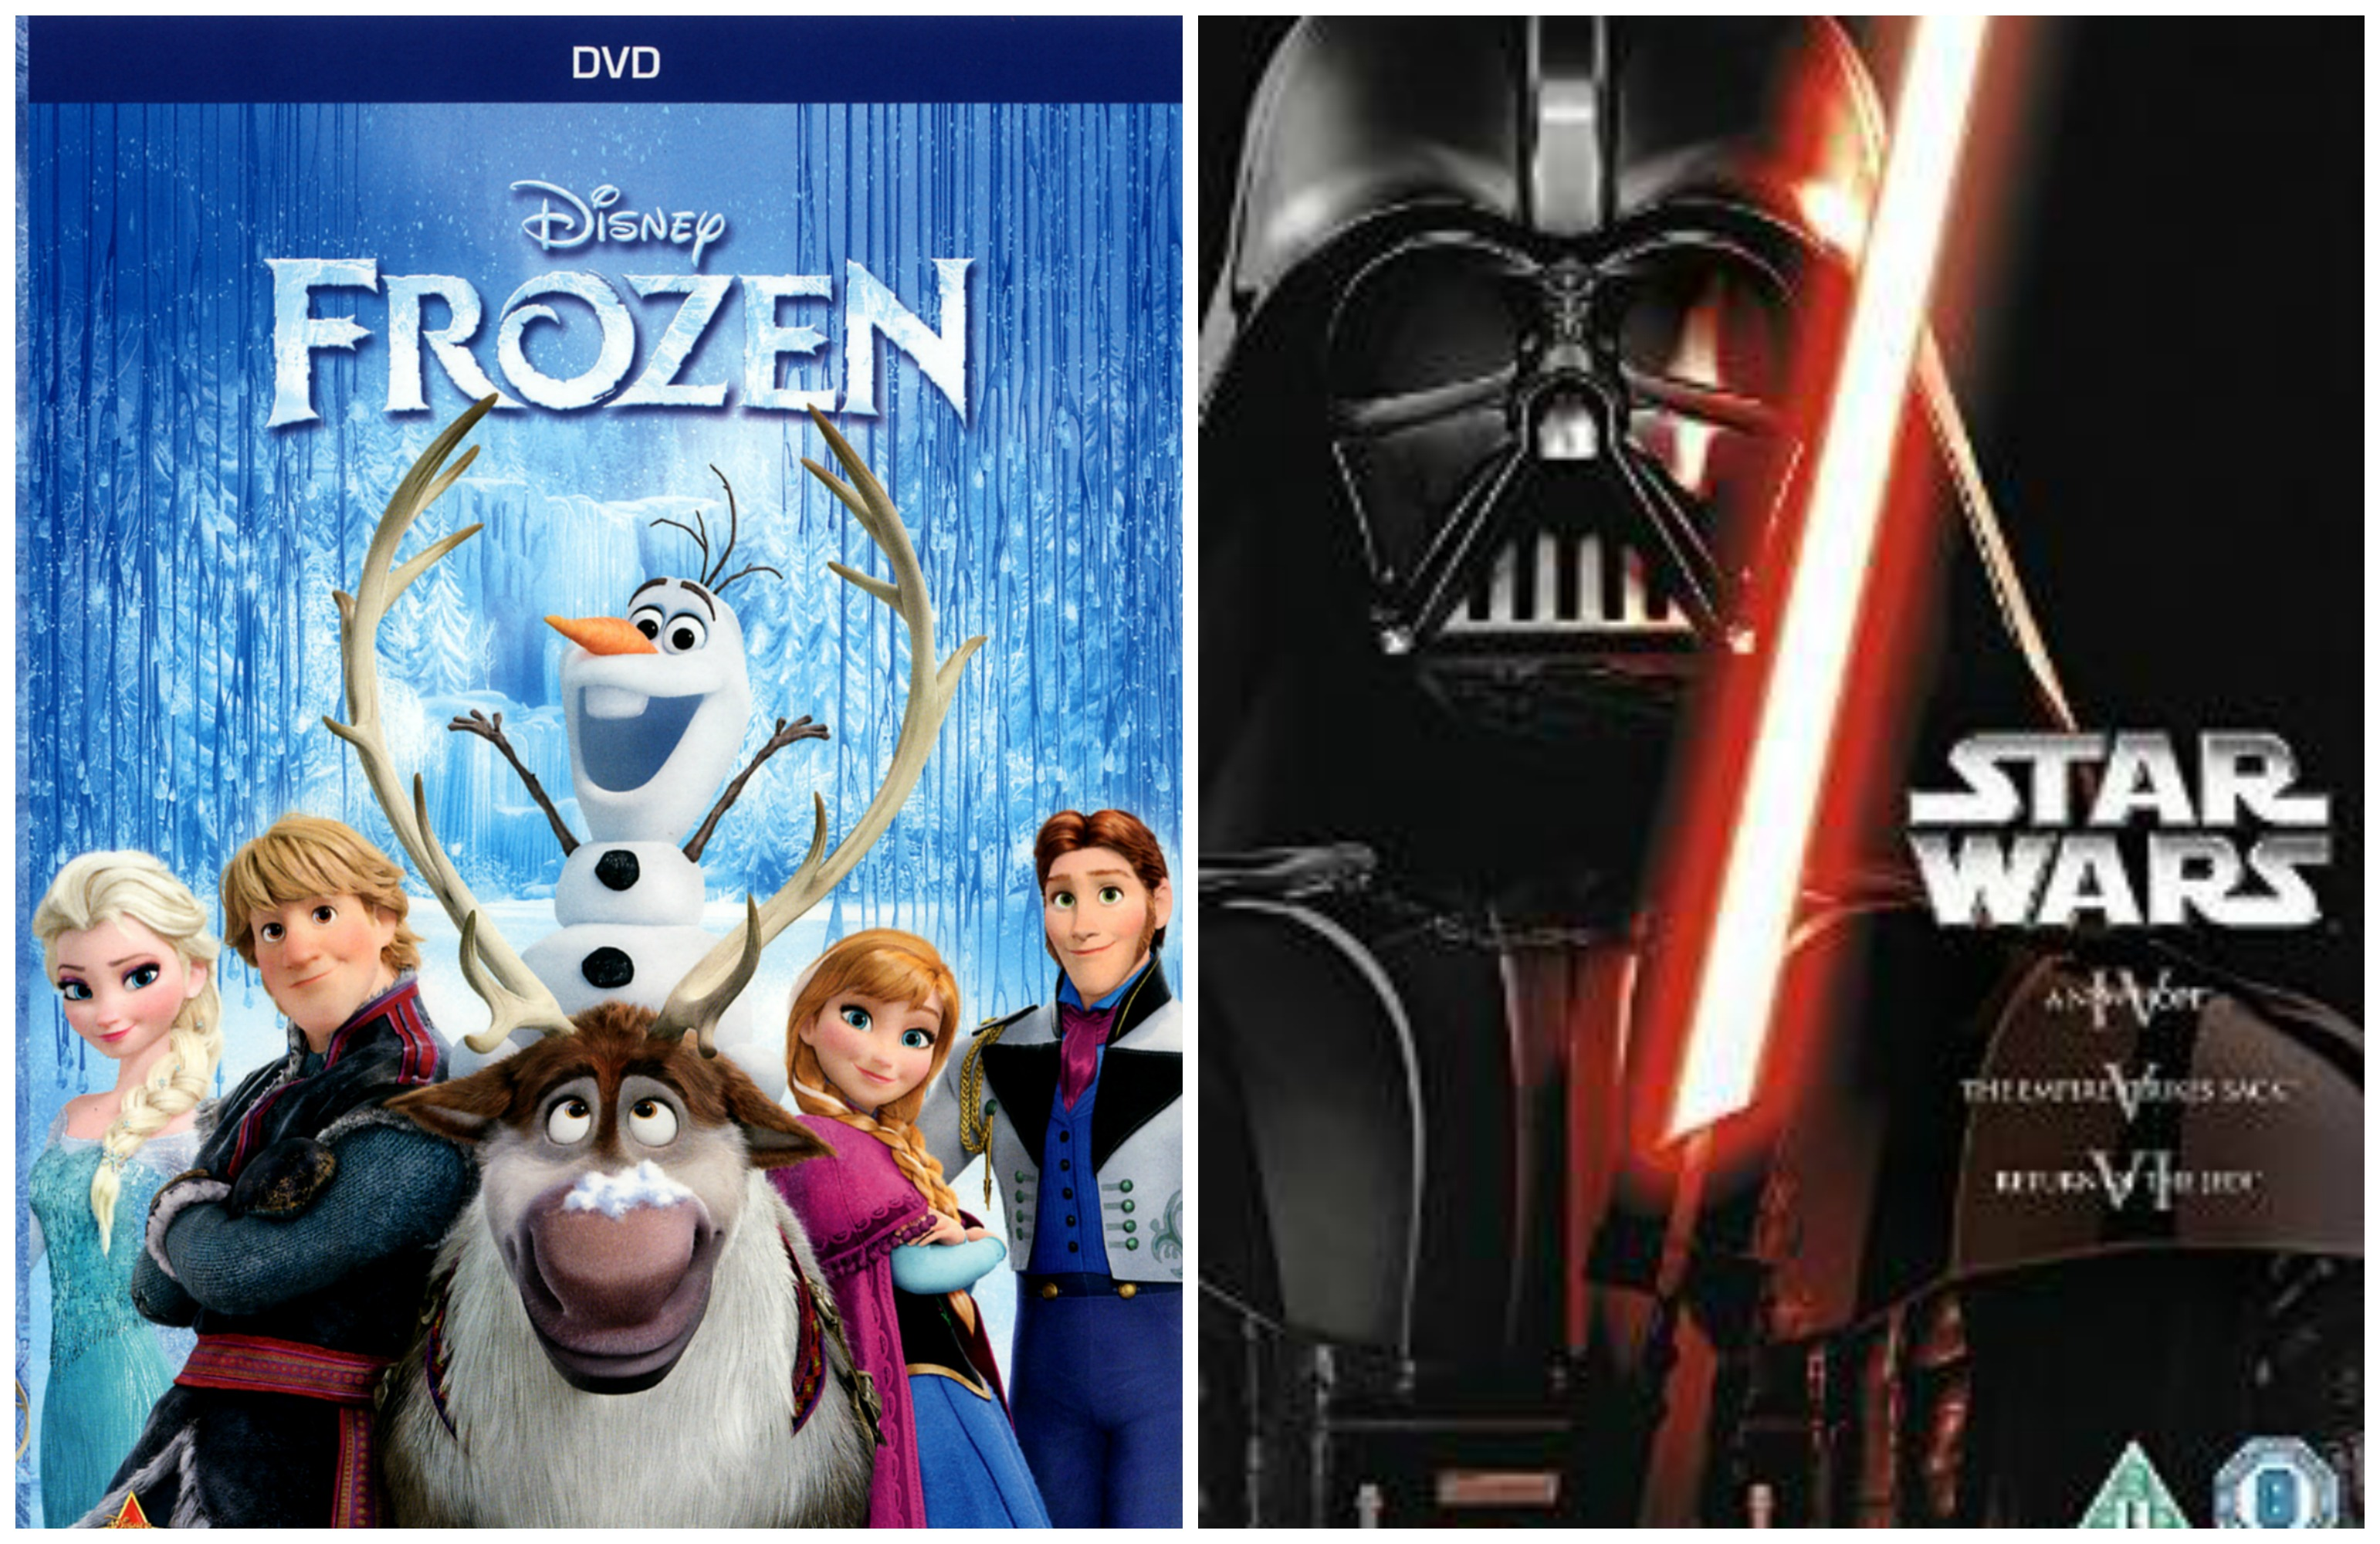 Frozen and Star Wars collage